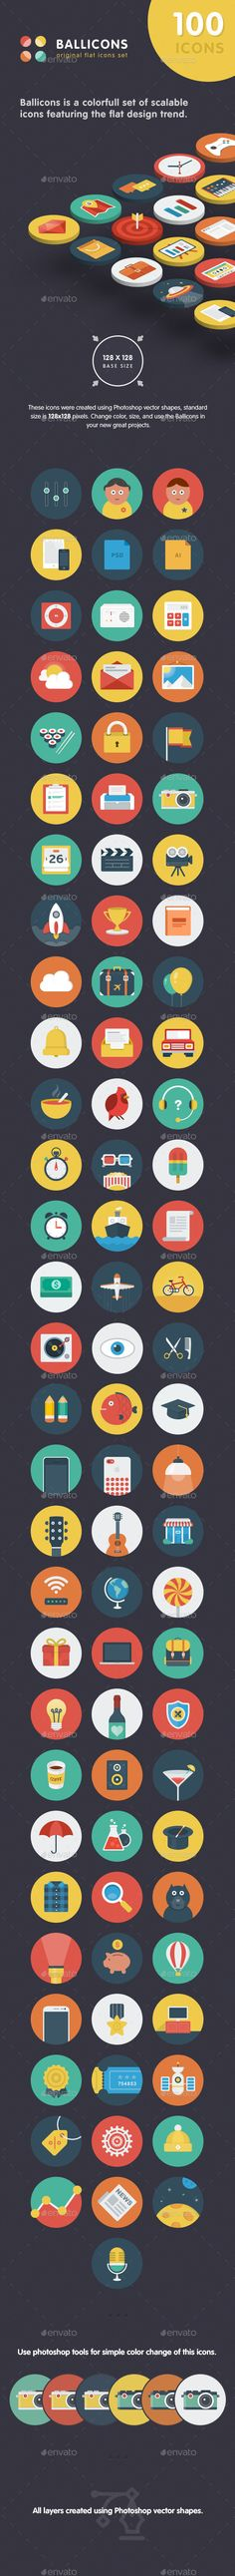 Ballicons Flat Icons Collection #design Download: http://graphicriver.net/item/ballicons-flat-icons-collection/13840606?ref=ksioks